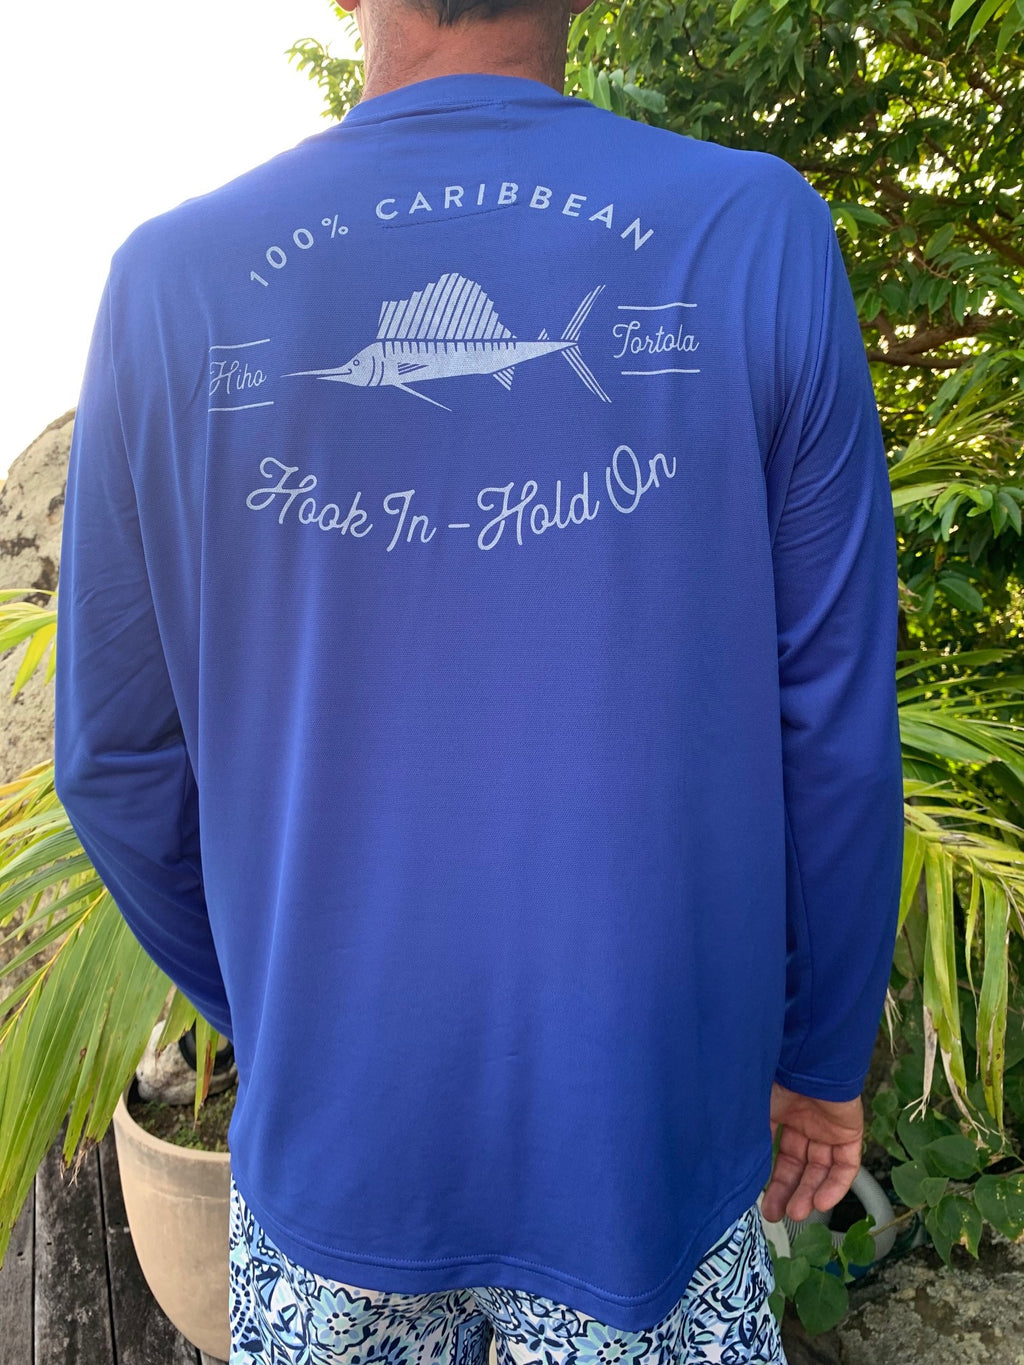 Long Sleeve HIHO Swordfish UPF 50 Shirt - Regatta Blue